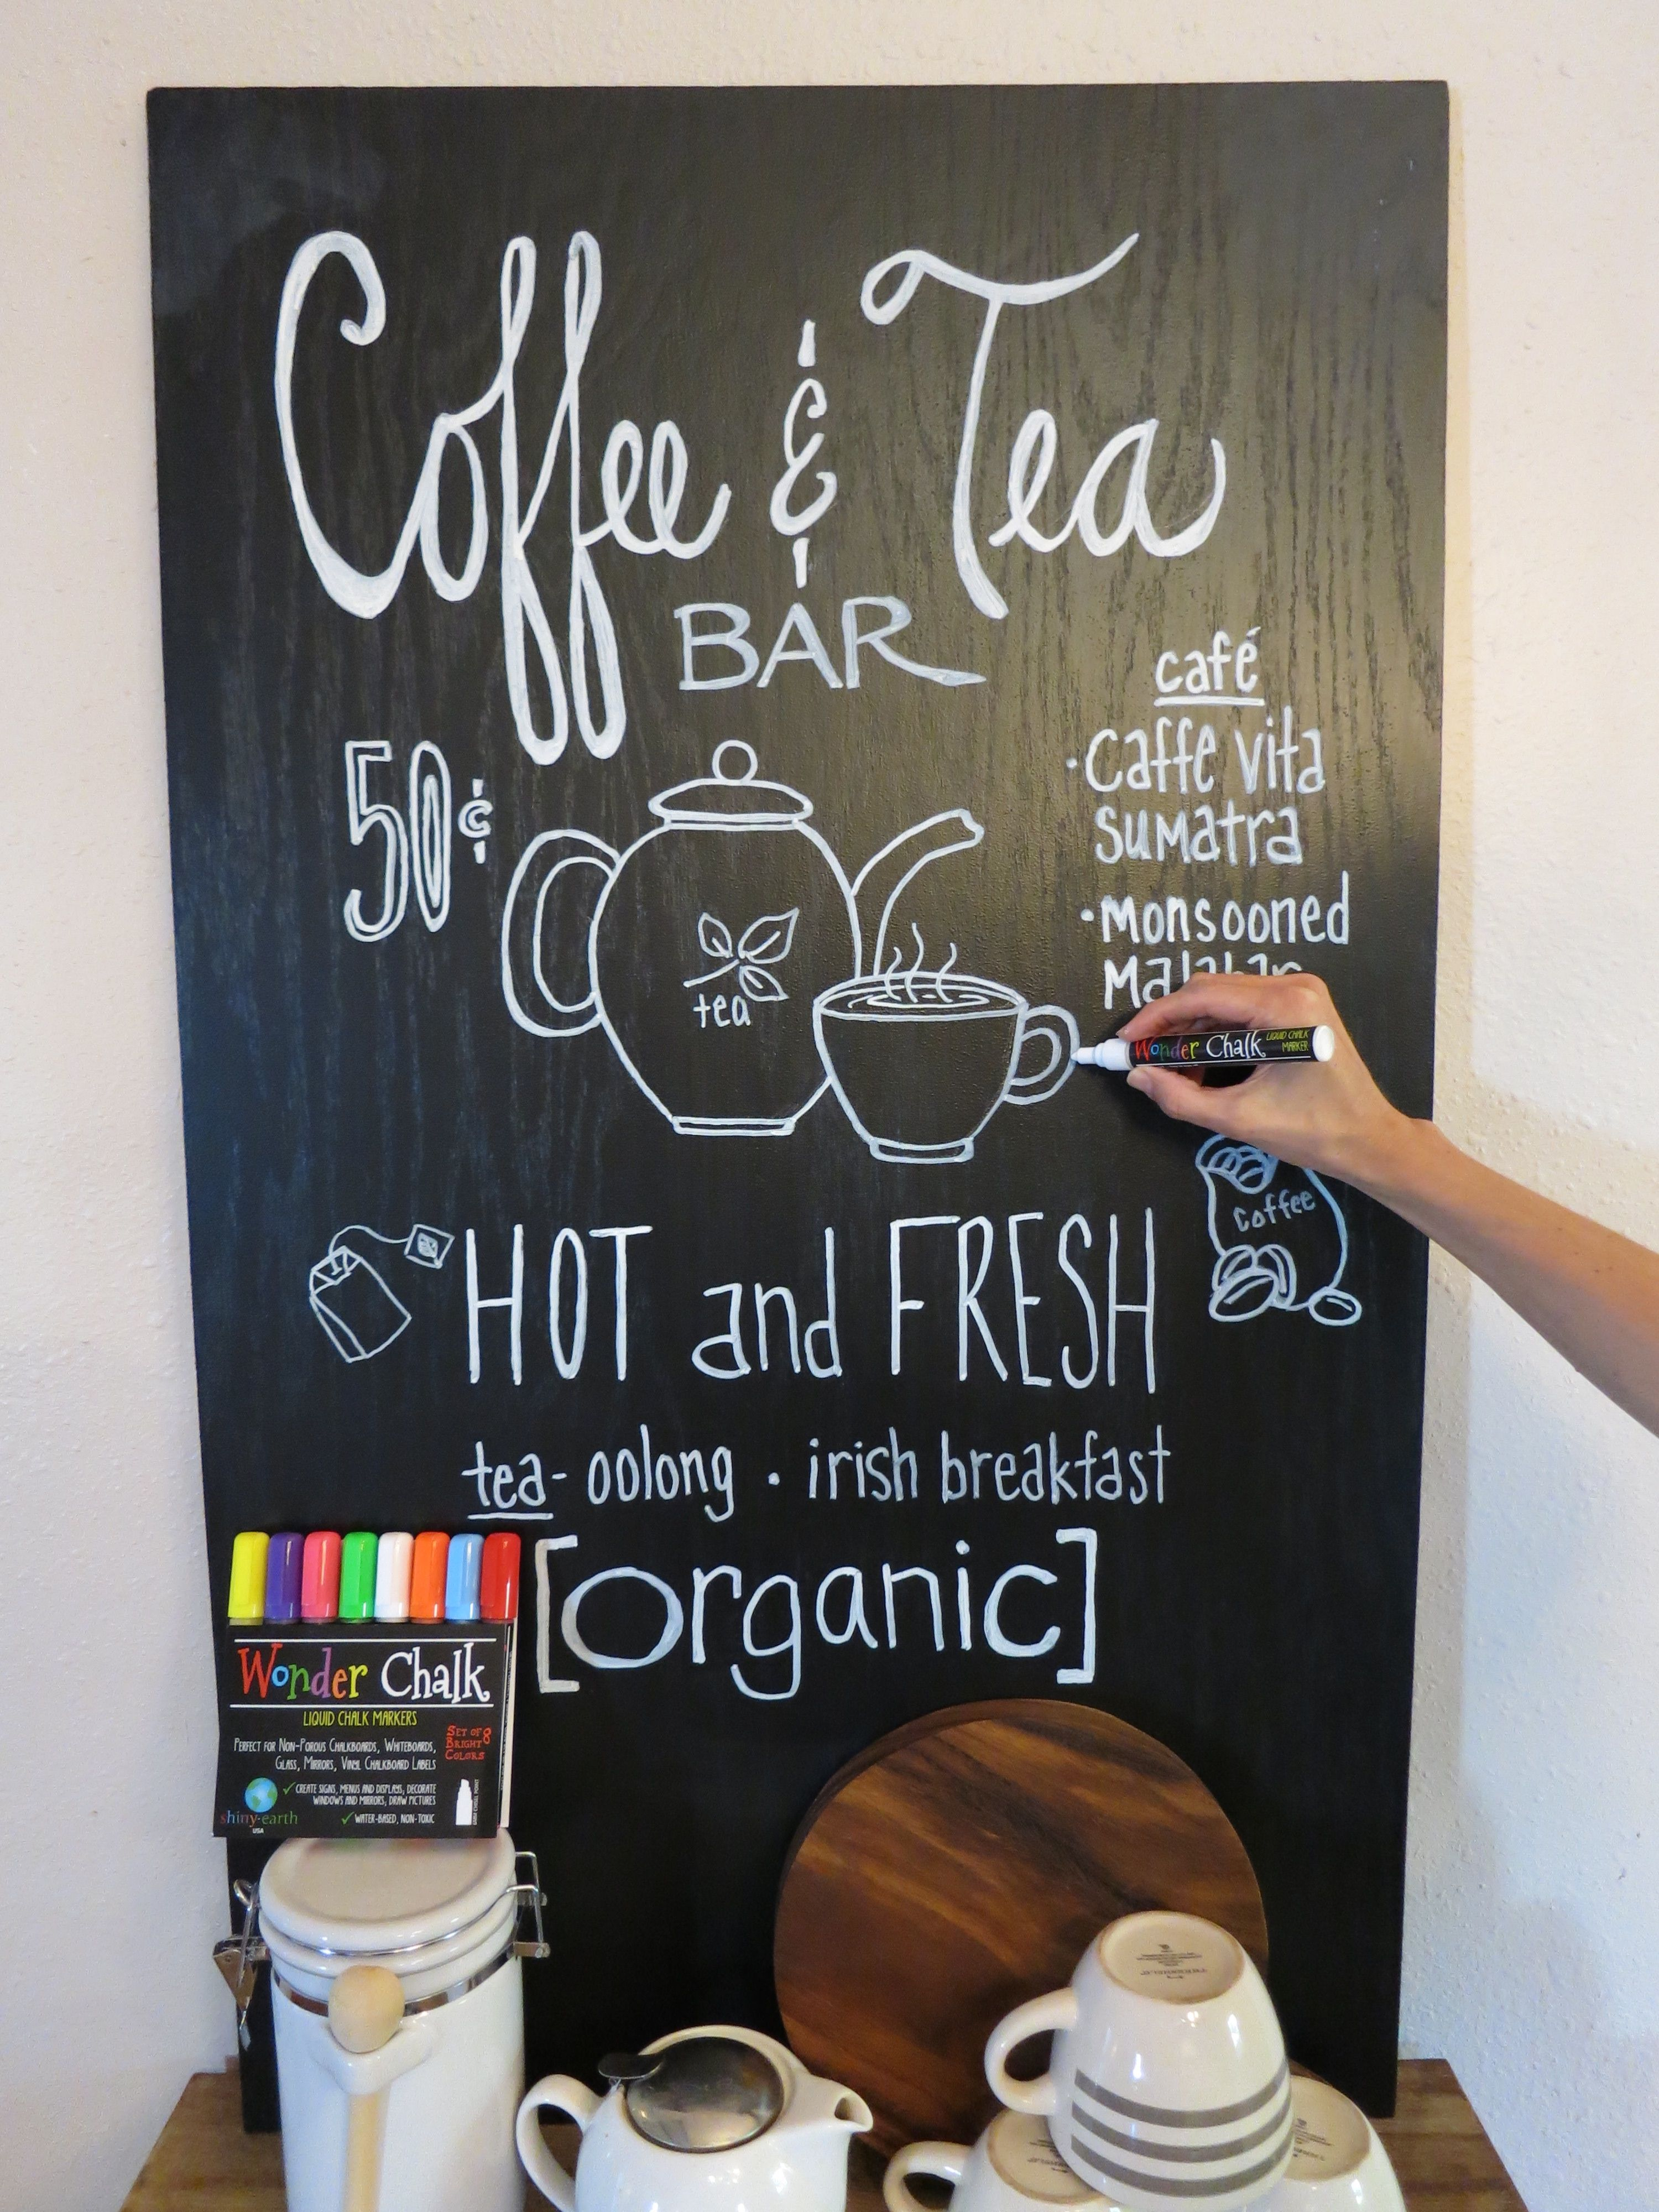 diy coffee bar sign from chalkboard painted plywood with a clear